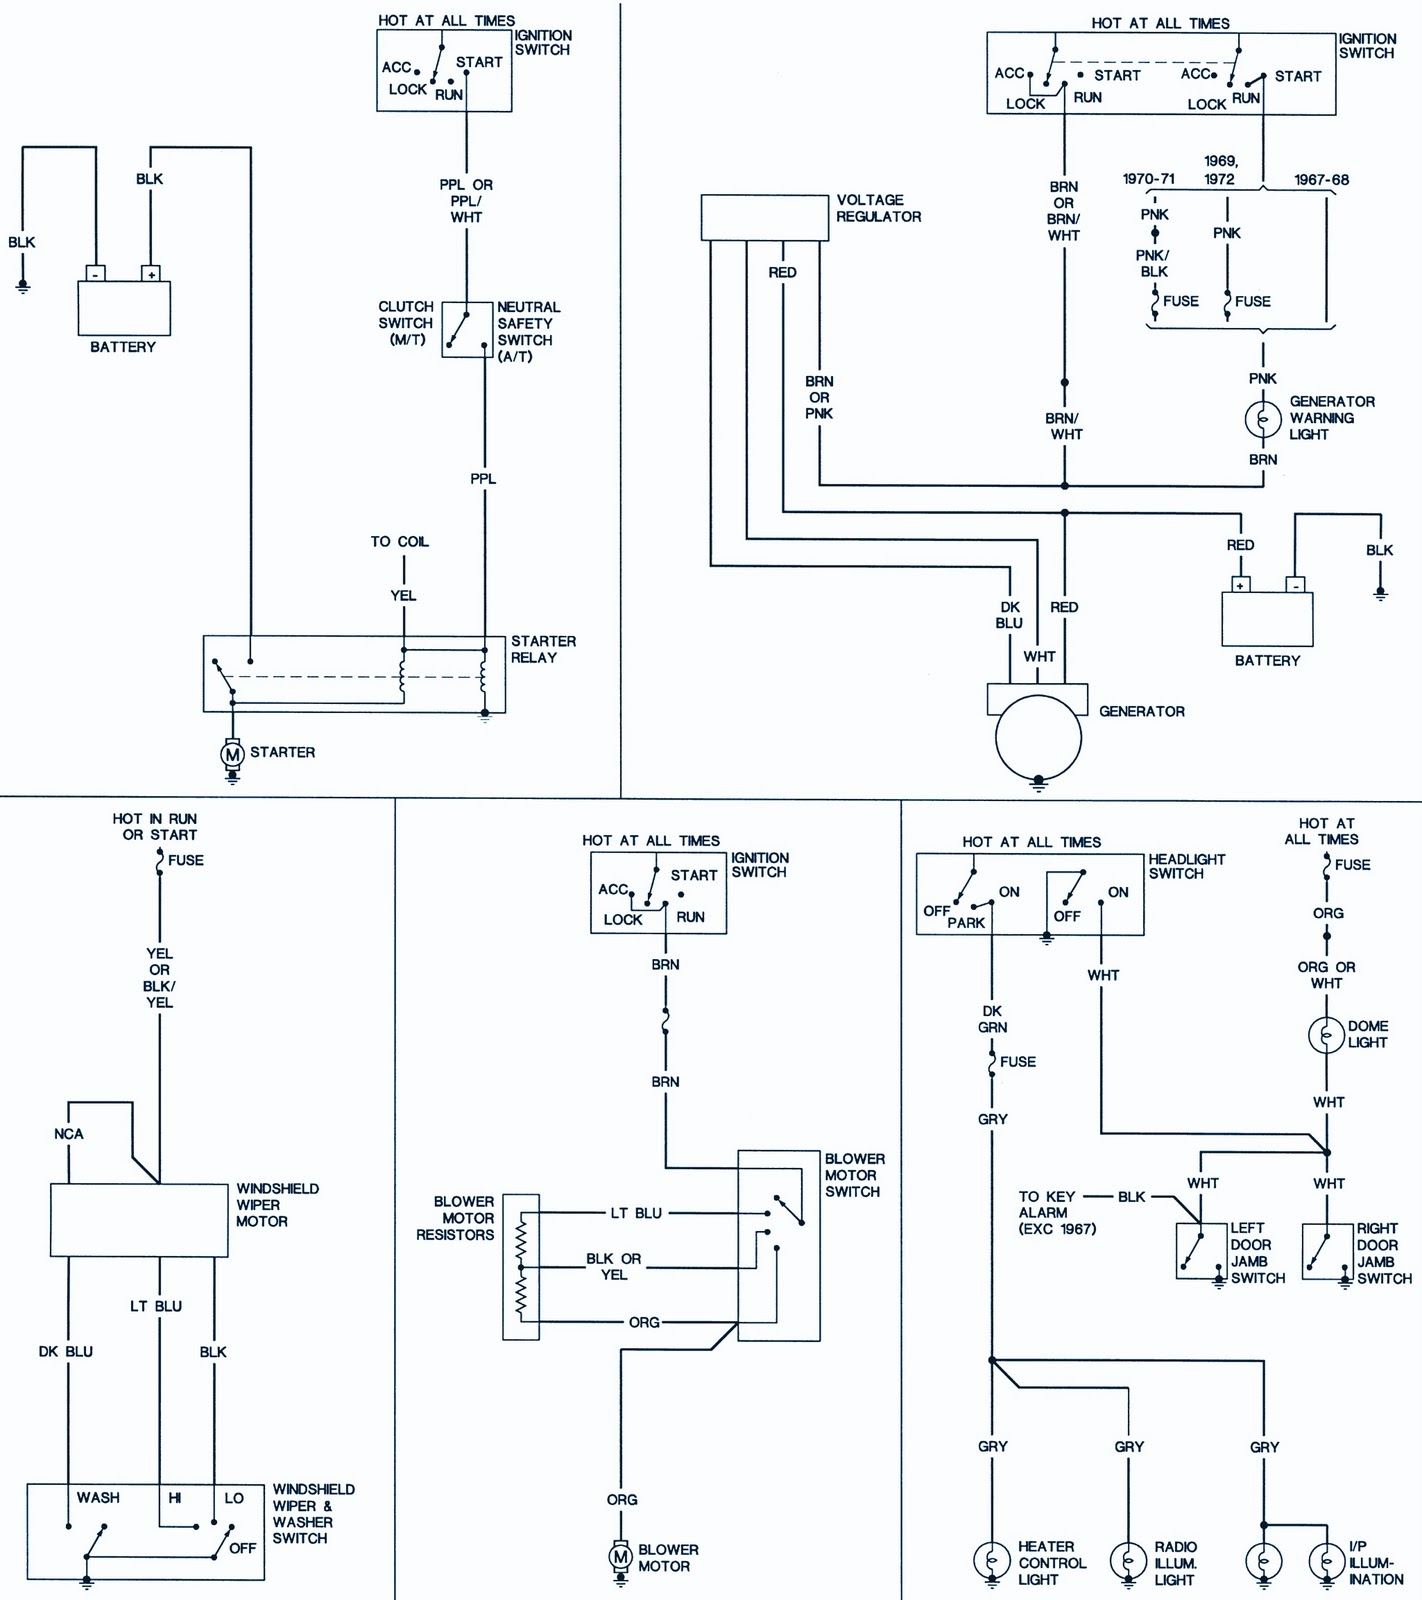 196769 Chevrolet Camaro Wirng Diagram | Auto Wiring Diagrams